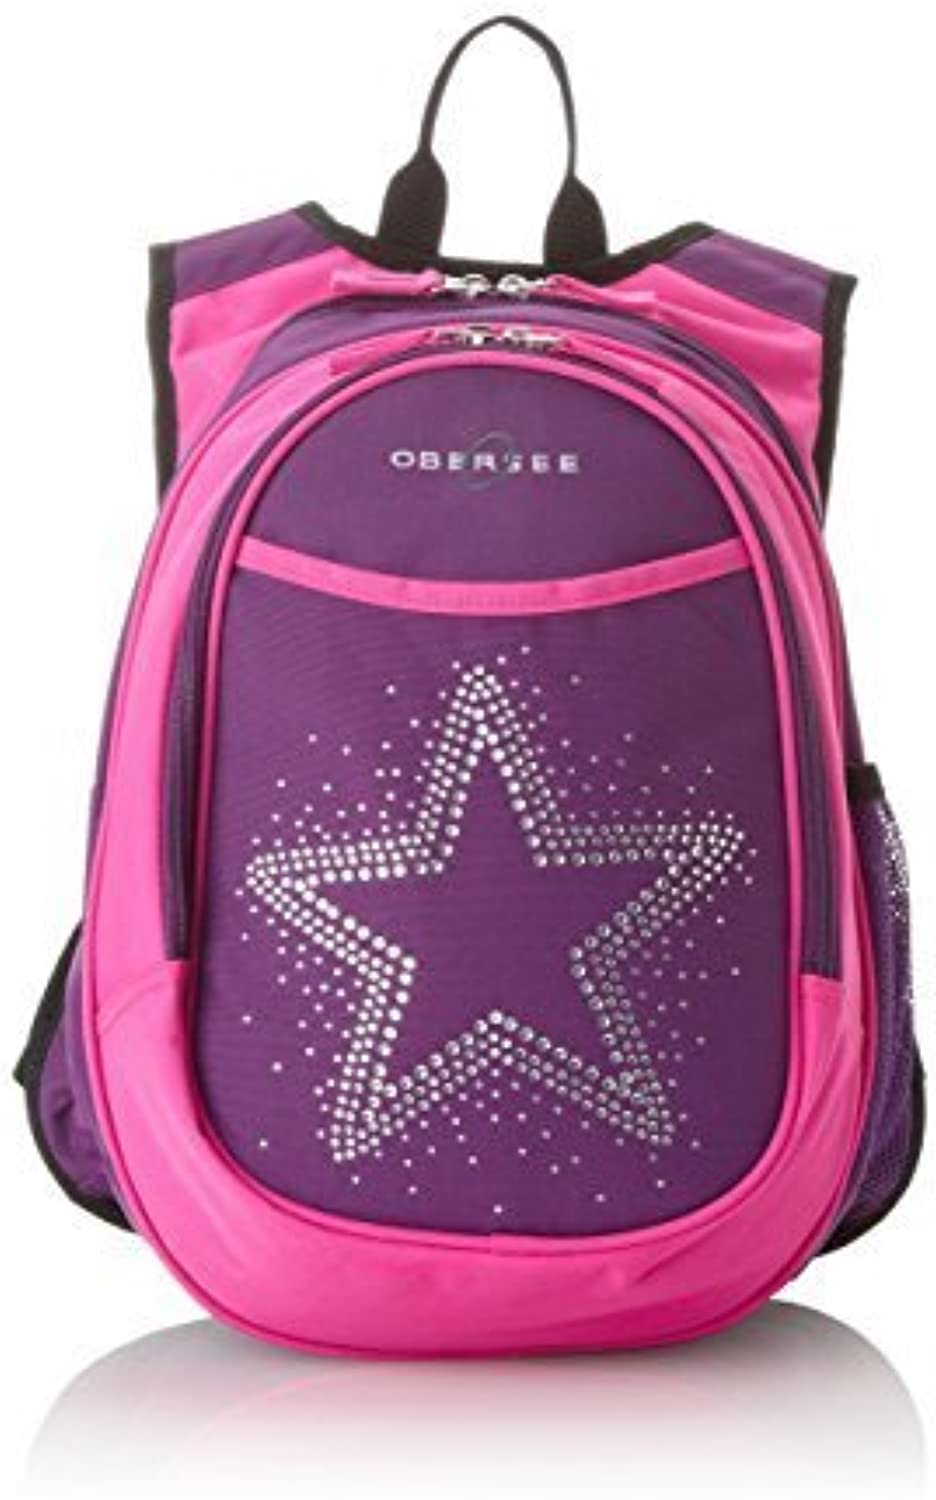 Obersee Kid's All-in-One Pre-School Backpacks with Integrated Cooler, Rhinestone Star by Obersee (English Manual)